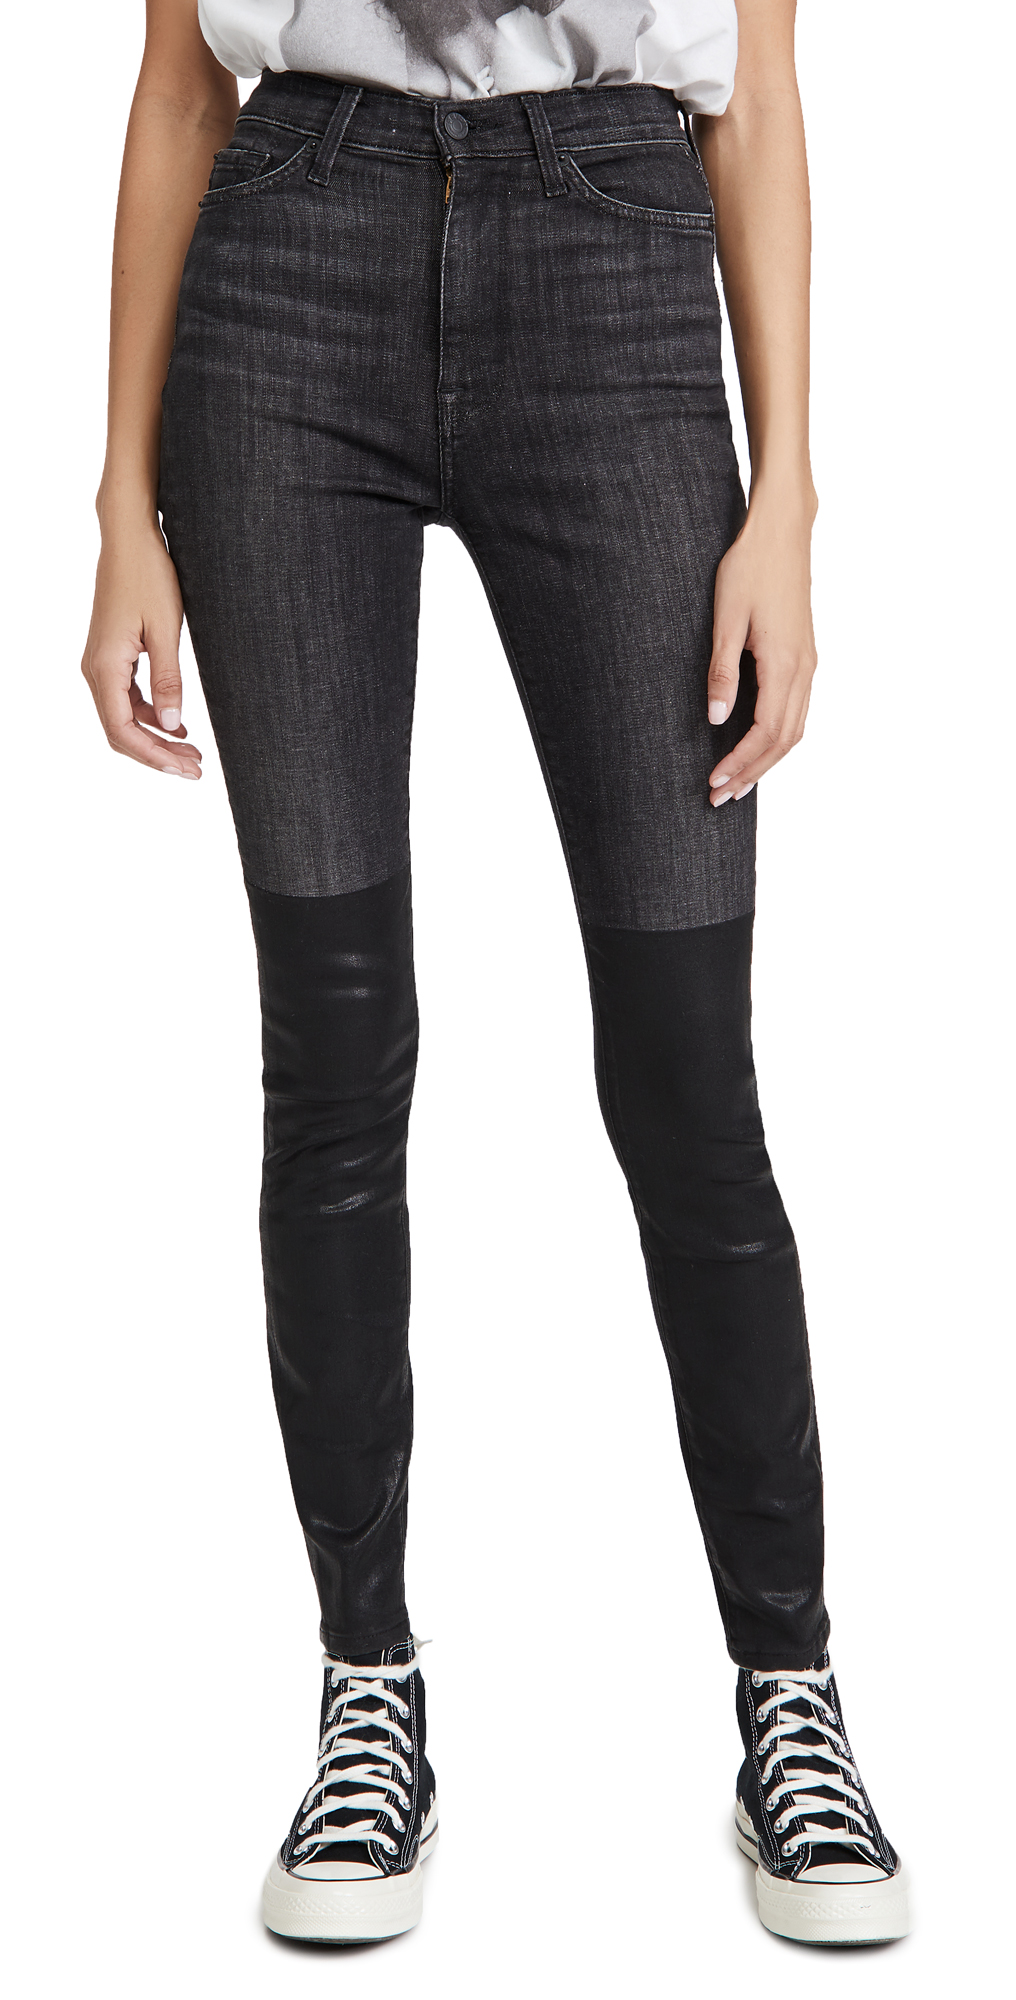 7 For All Mankind Coated Boot High Waist Skinny Jeans